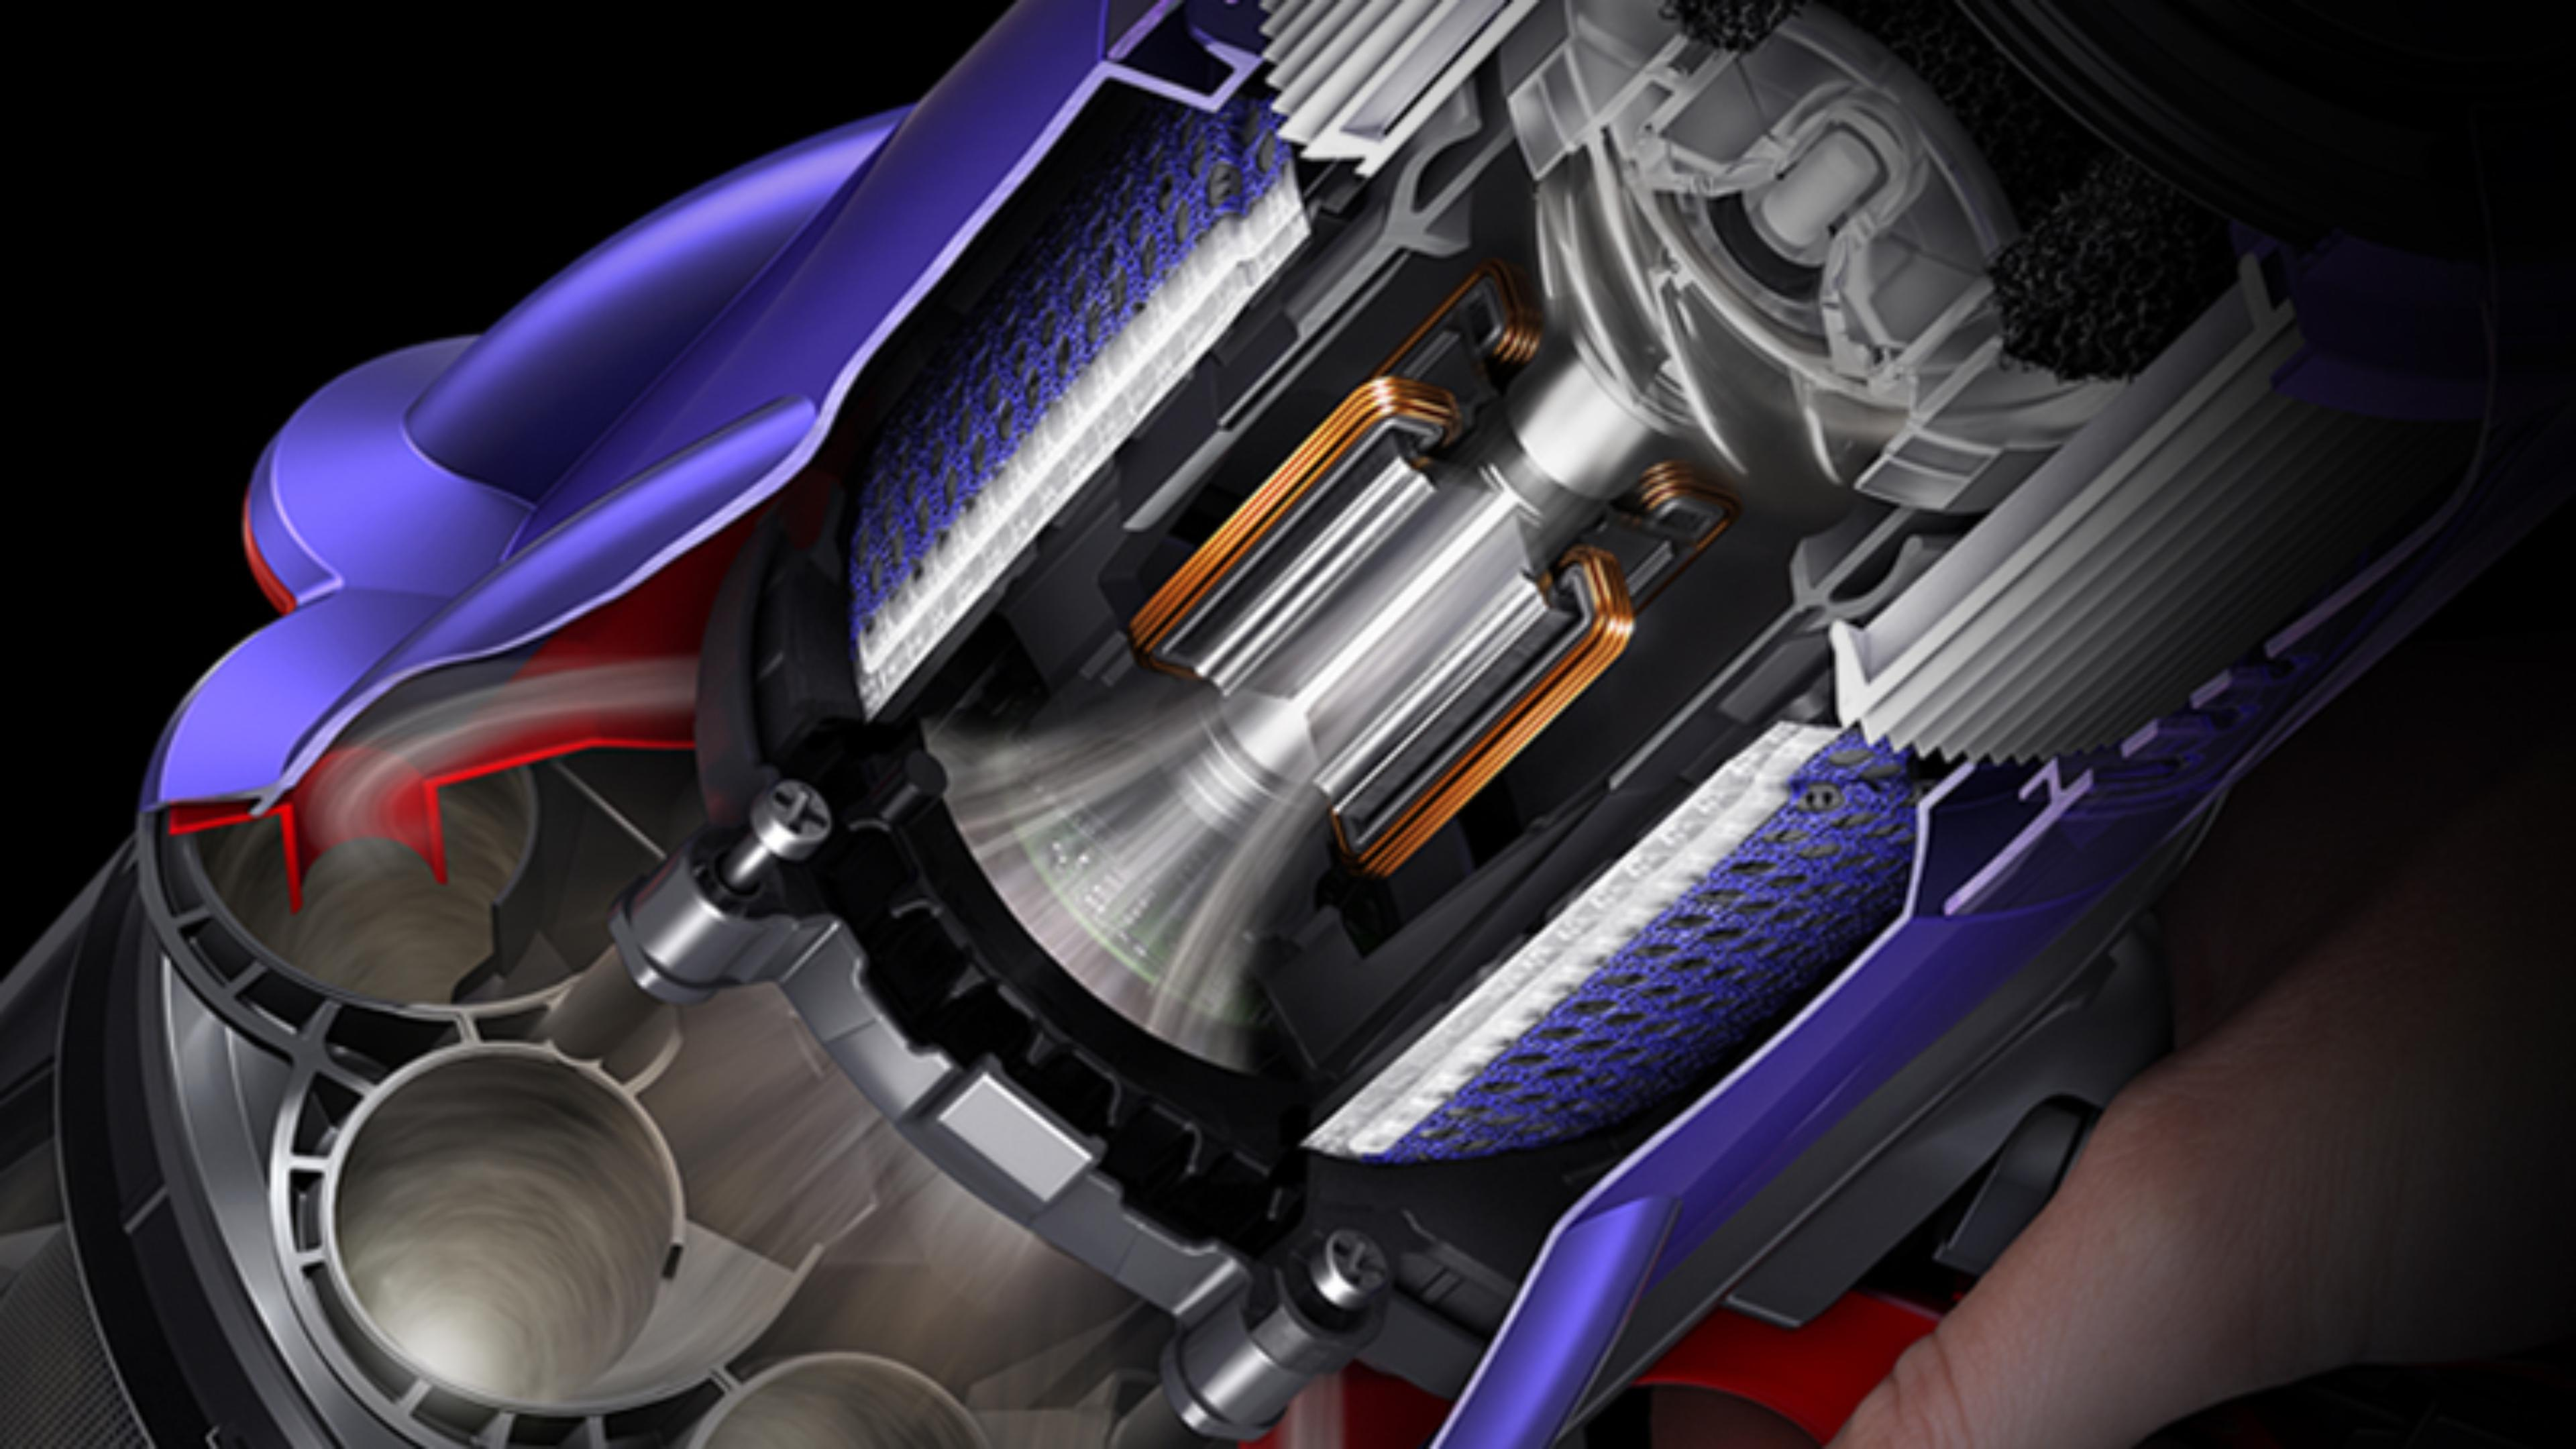 Cutaway illustration of the Dyson Hyperdymium motor